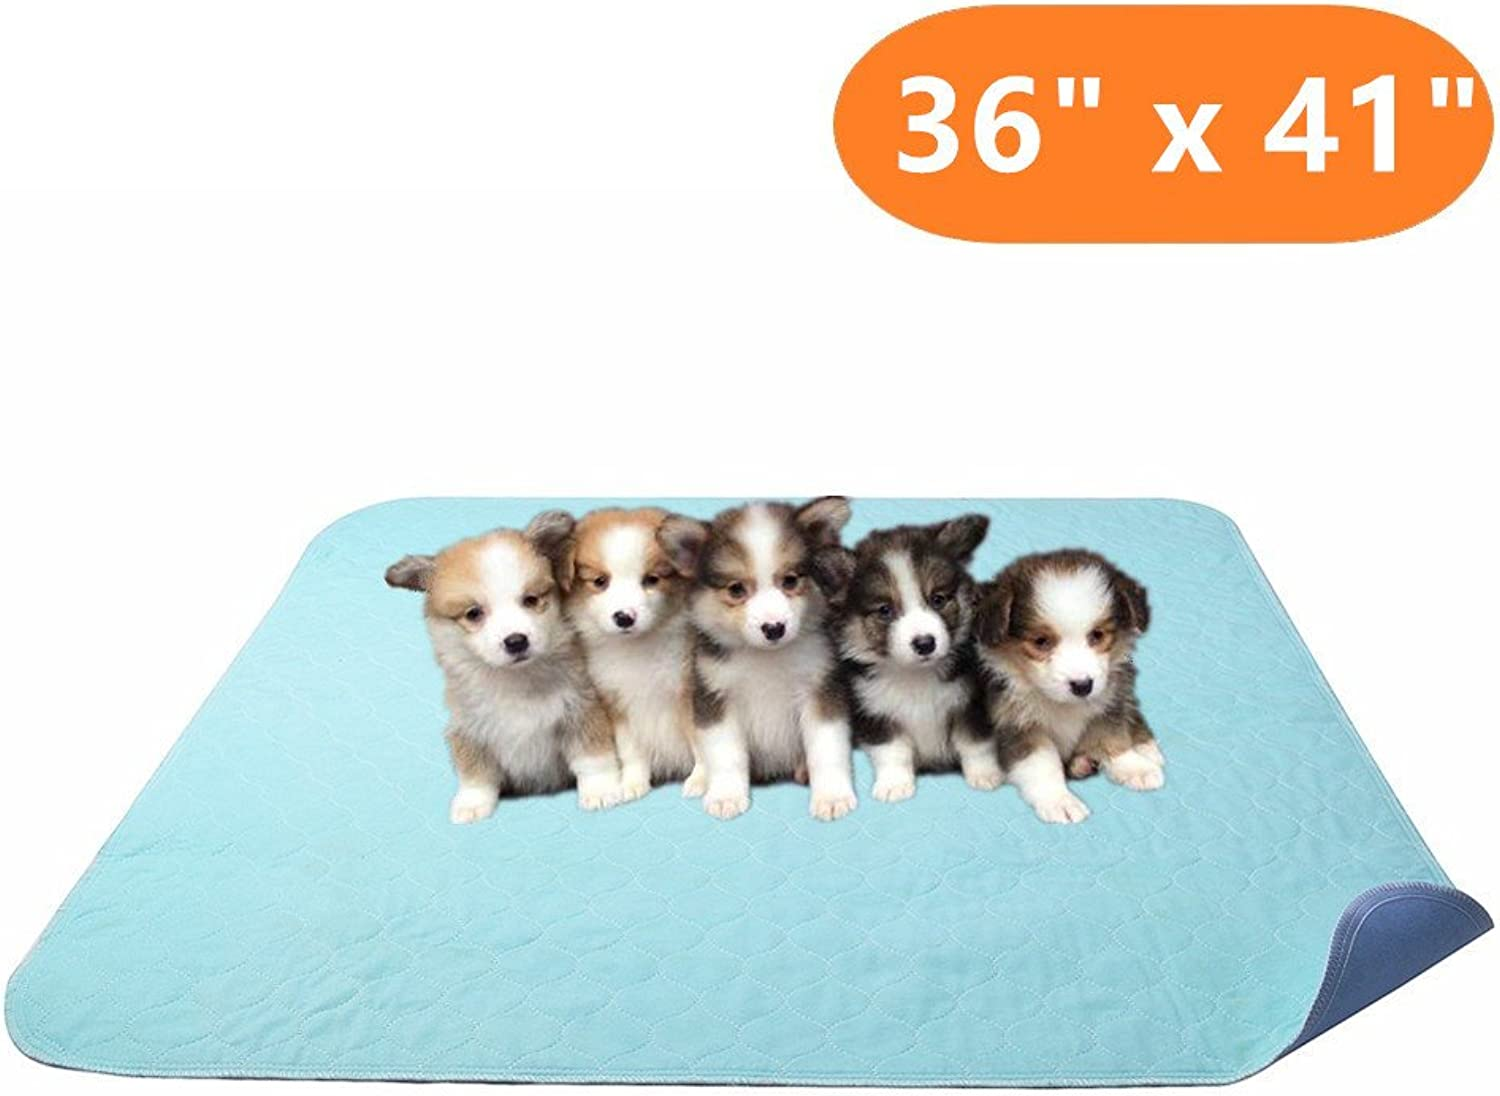 KOOLTAIL Washable Puppy Pad 36  x 41  Dog Pee Pad for Whelping Potty Training